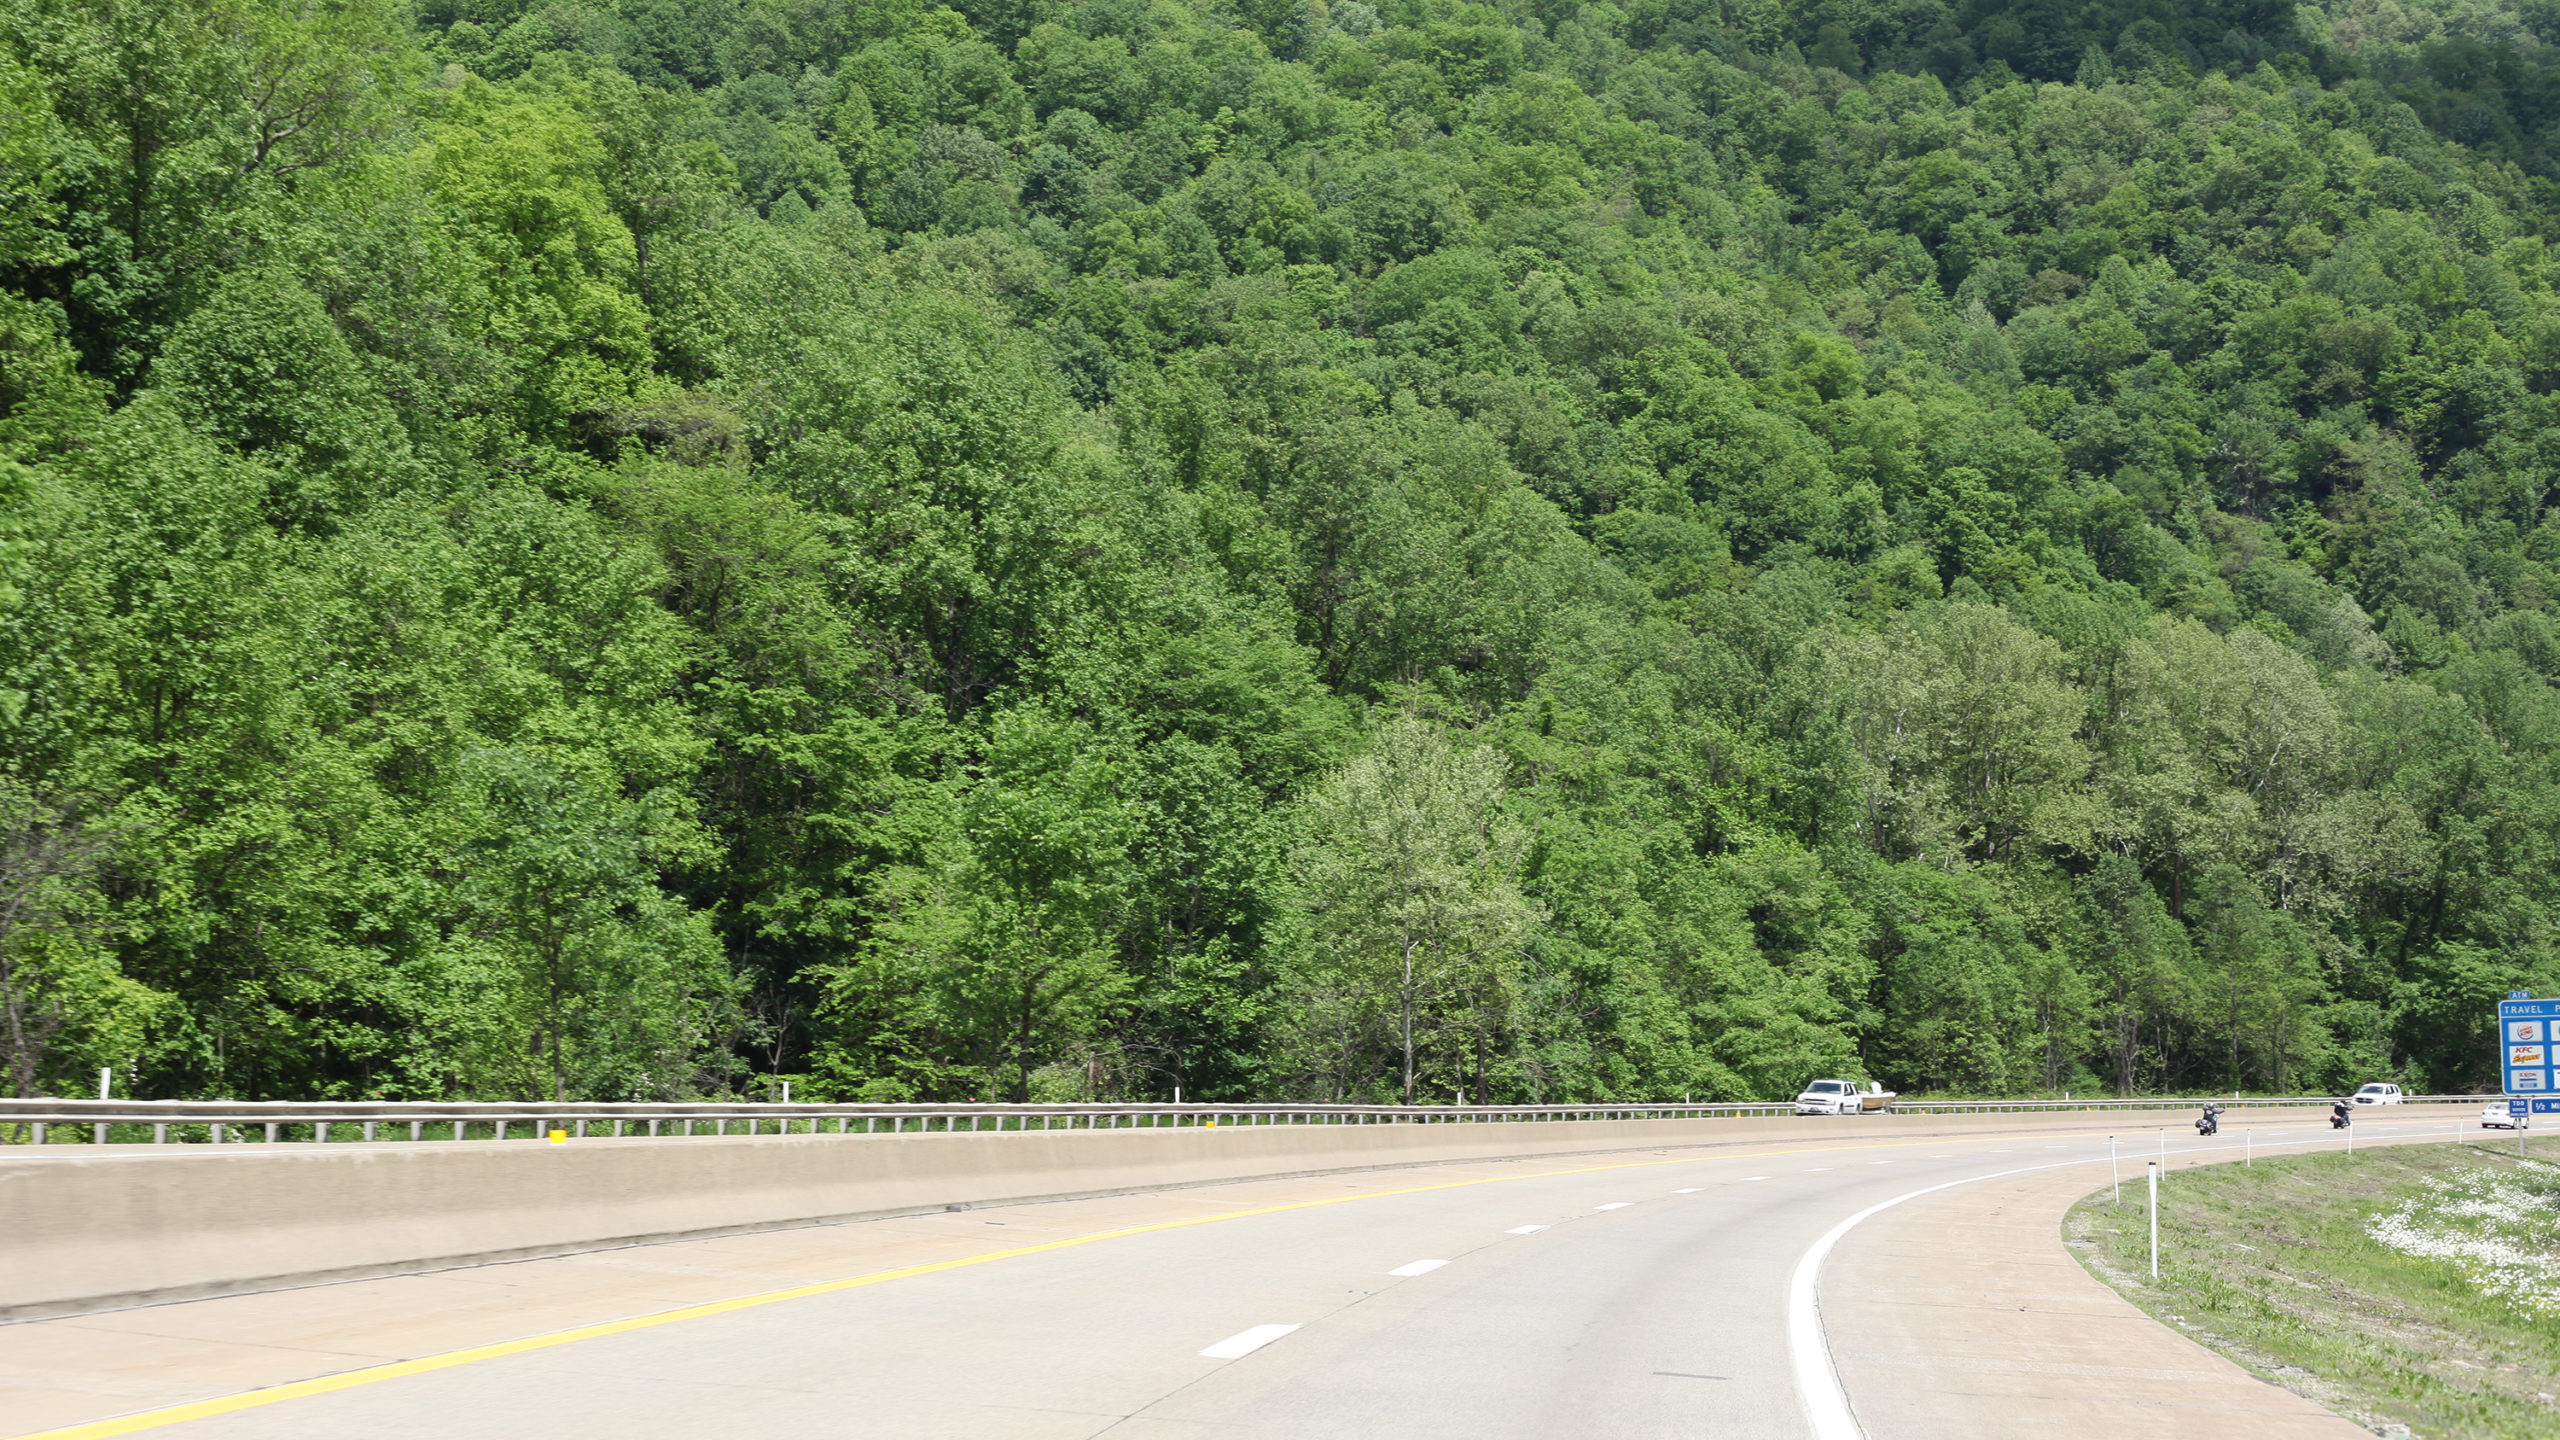 A wall of trees along a highway